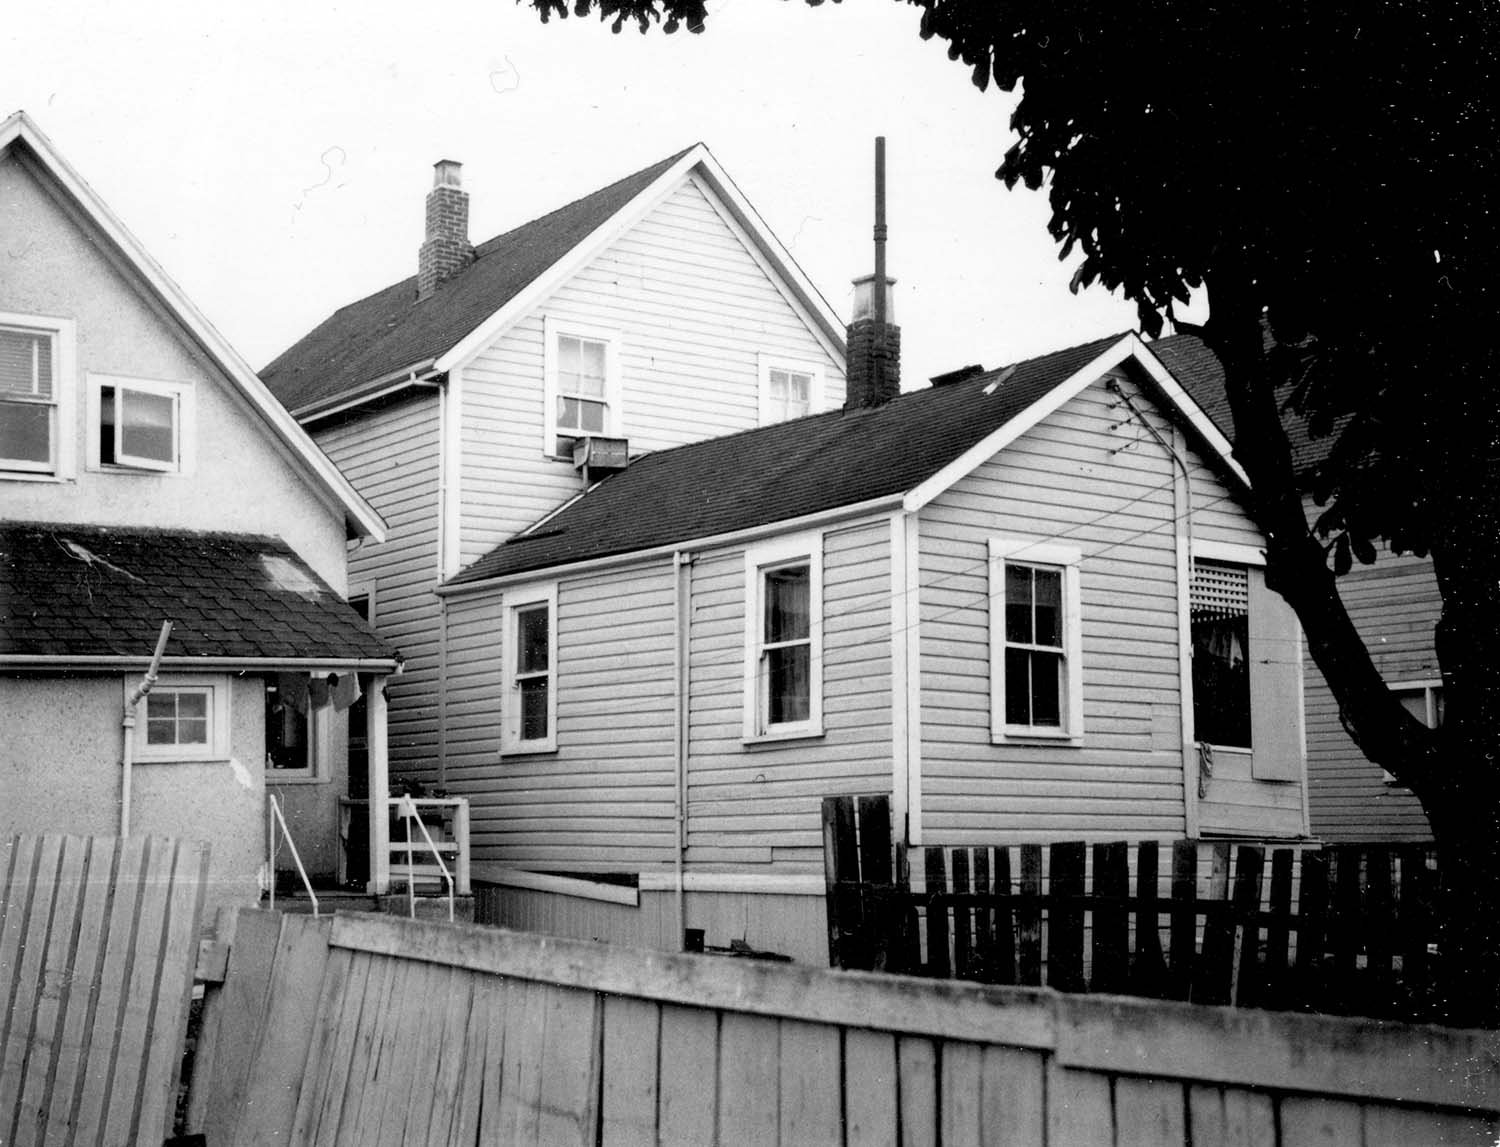 224 Union Street back, 1968. Photograph also shows portion of 218 Union Street. Reference code COV-S168-: CVA 203-39